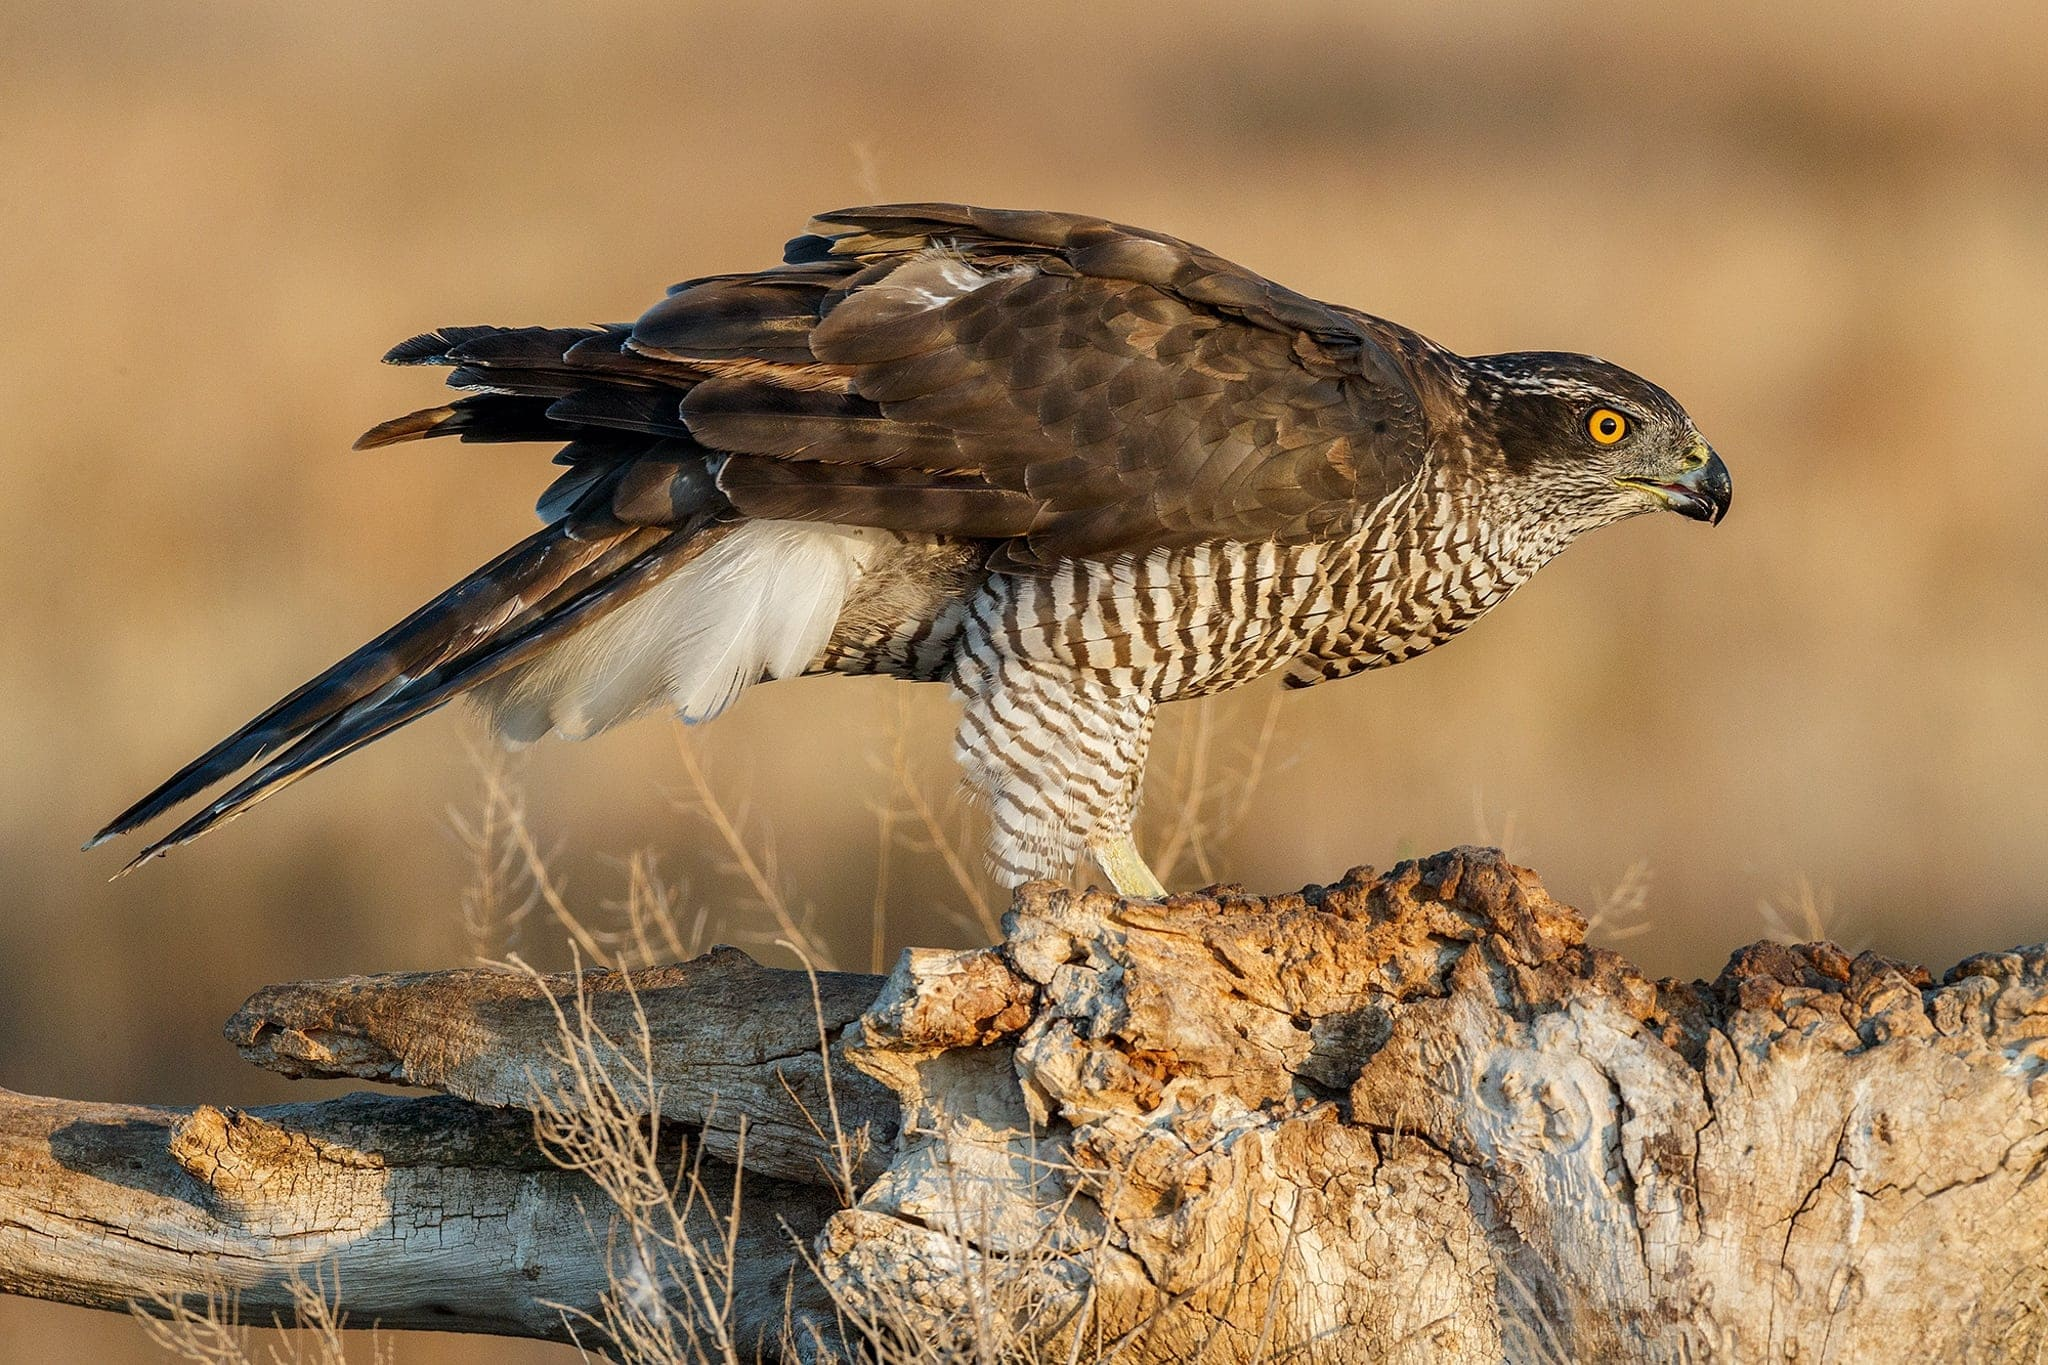 One Of Pair Of Goshawks That Are Found In The Area Photographed On The Estate Used For The NaturesLens Spanish Birds Of Toledo Photography Holiday